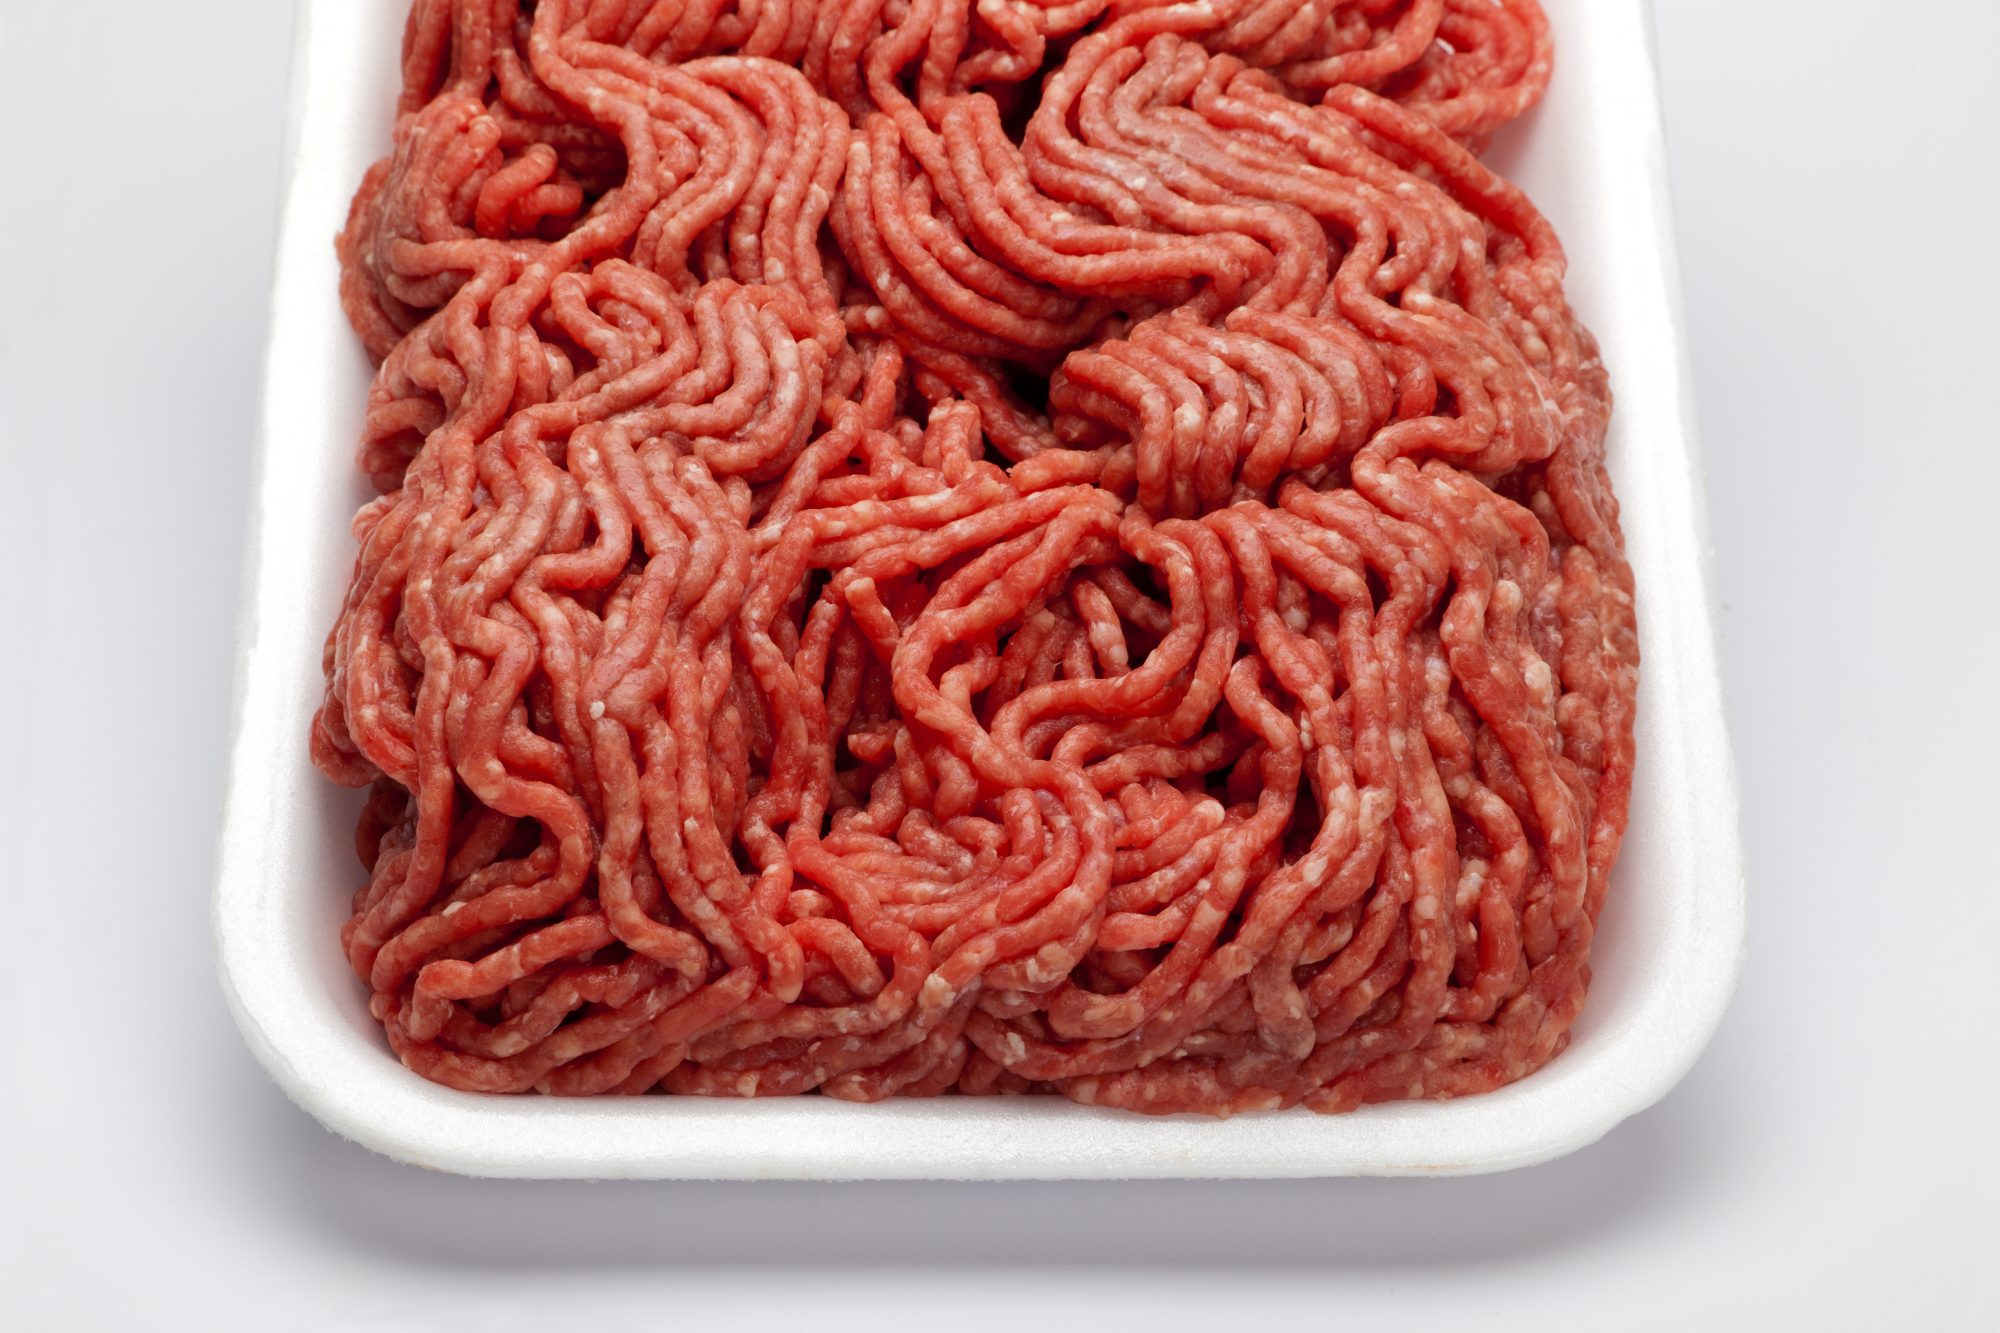 Ground beef tout Getty 7/15/20